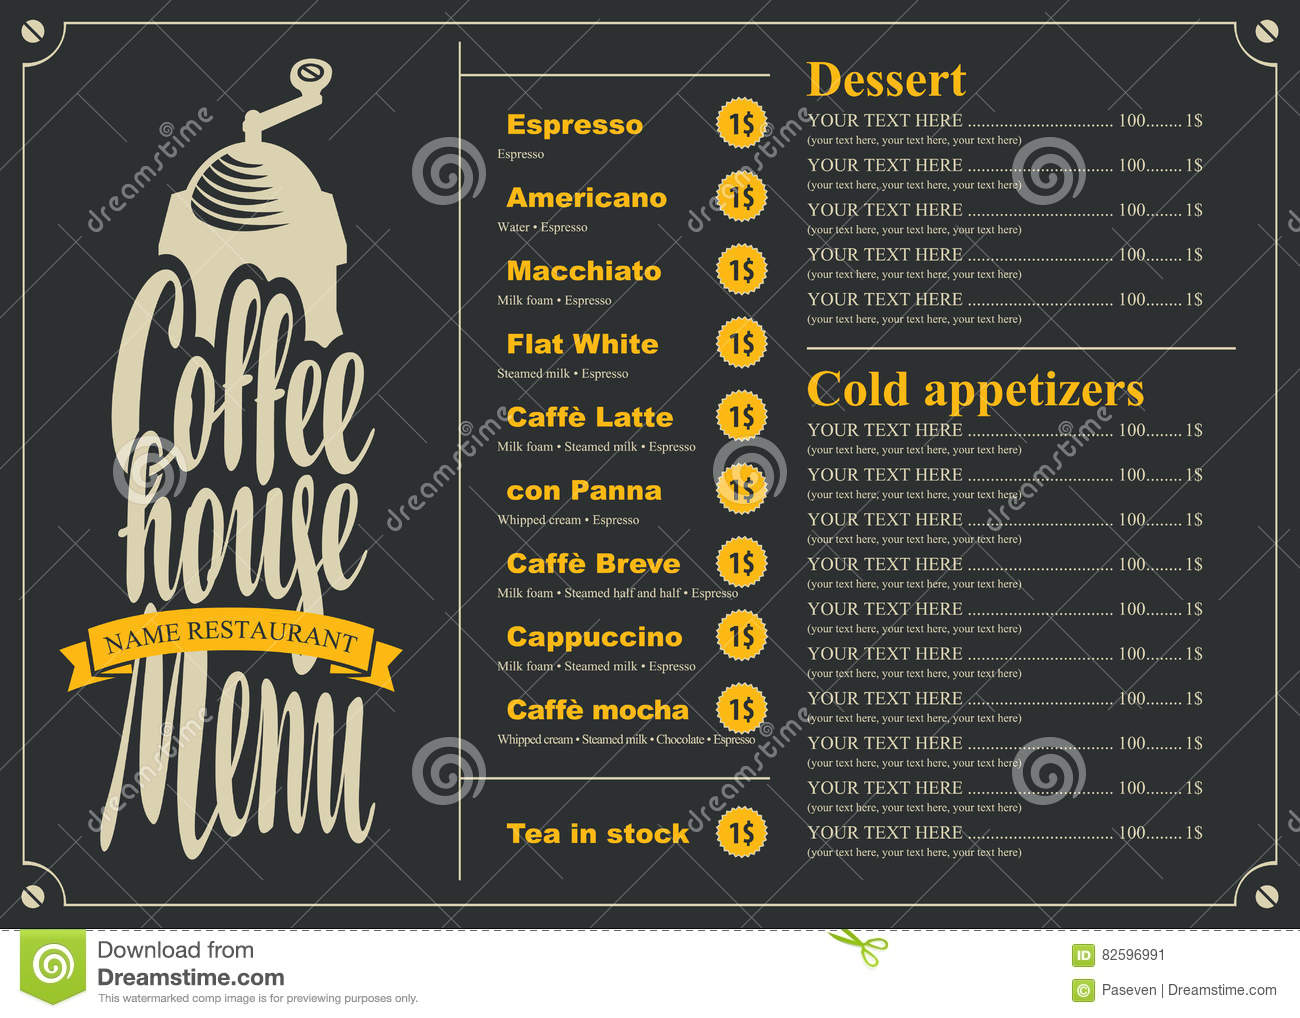 Menu With Price List For The Coffee House Stock Vector